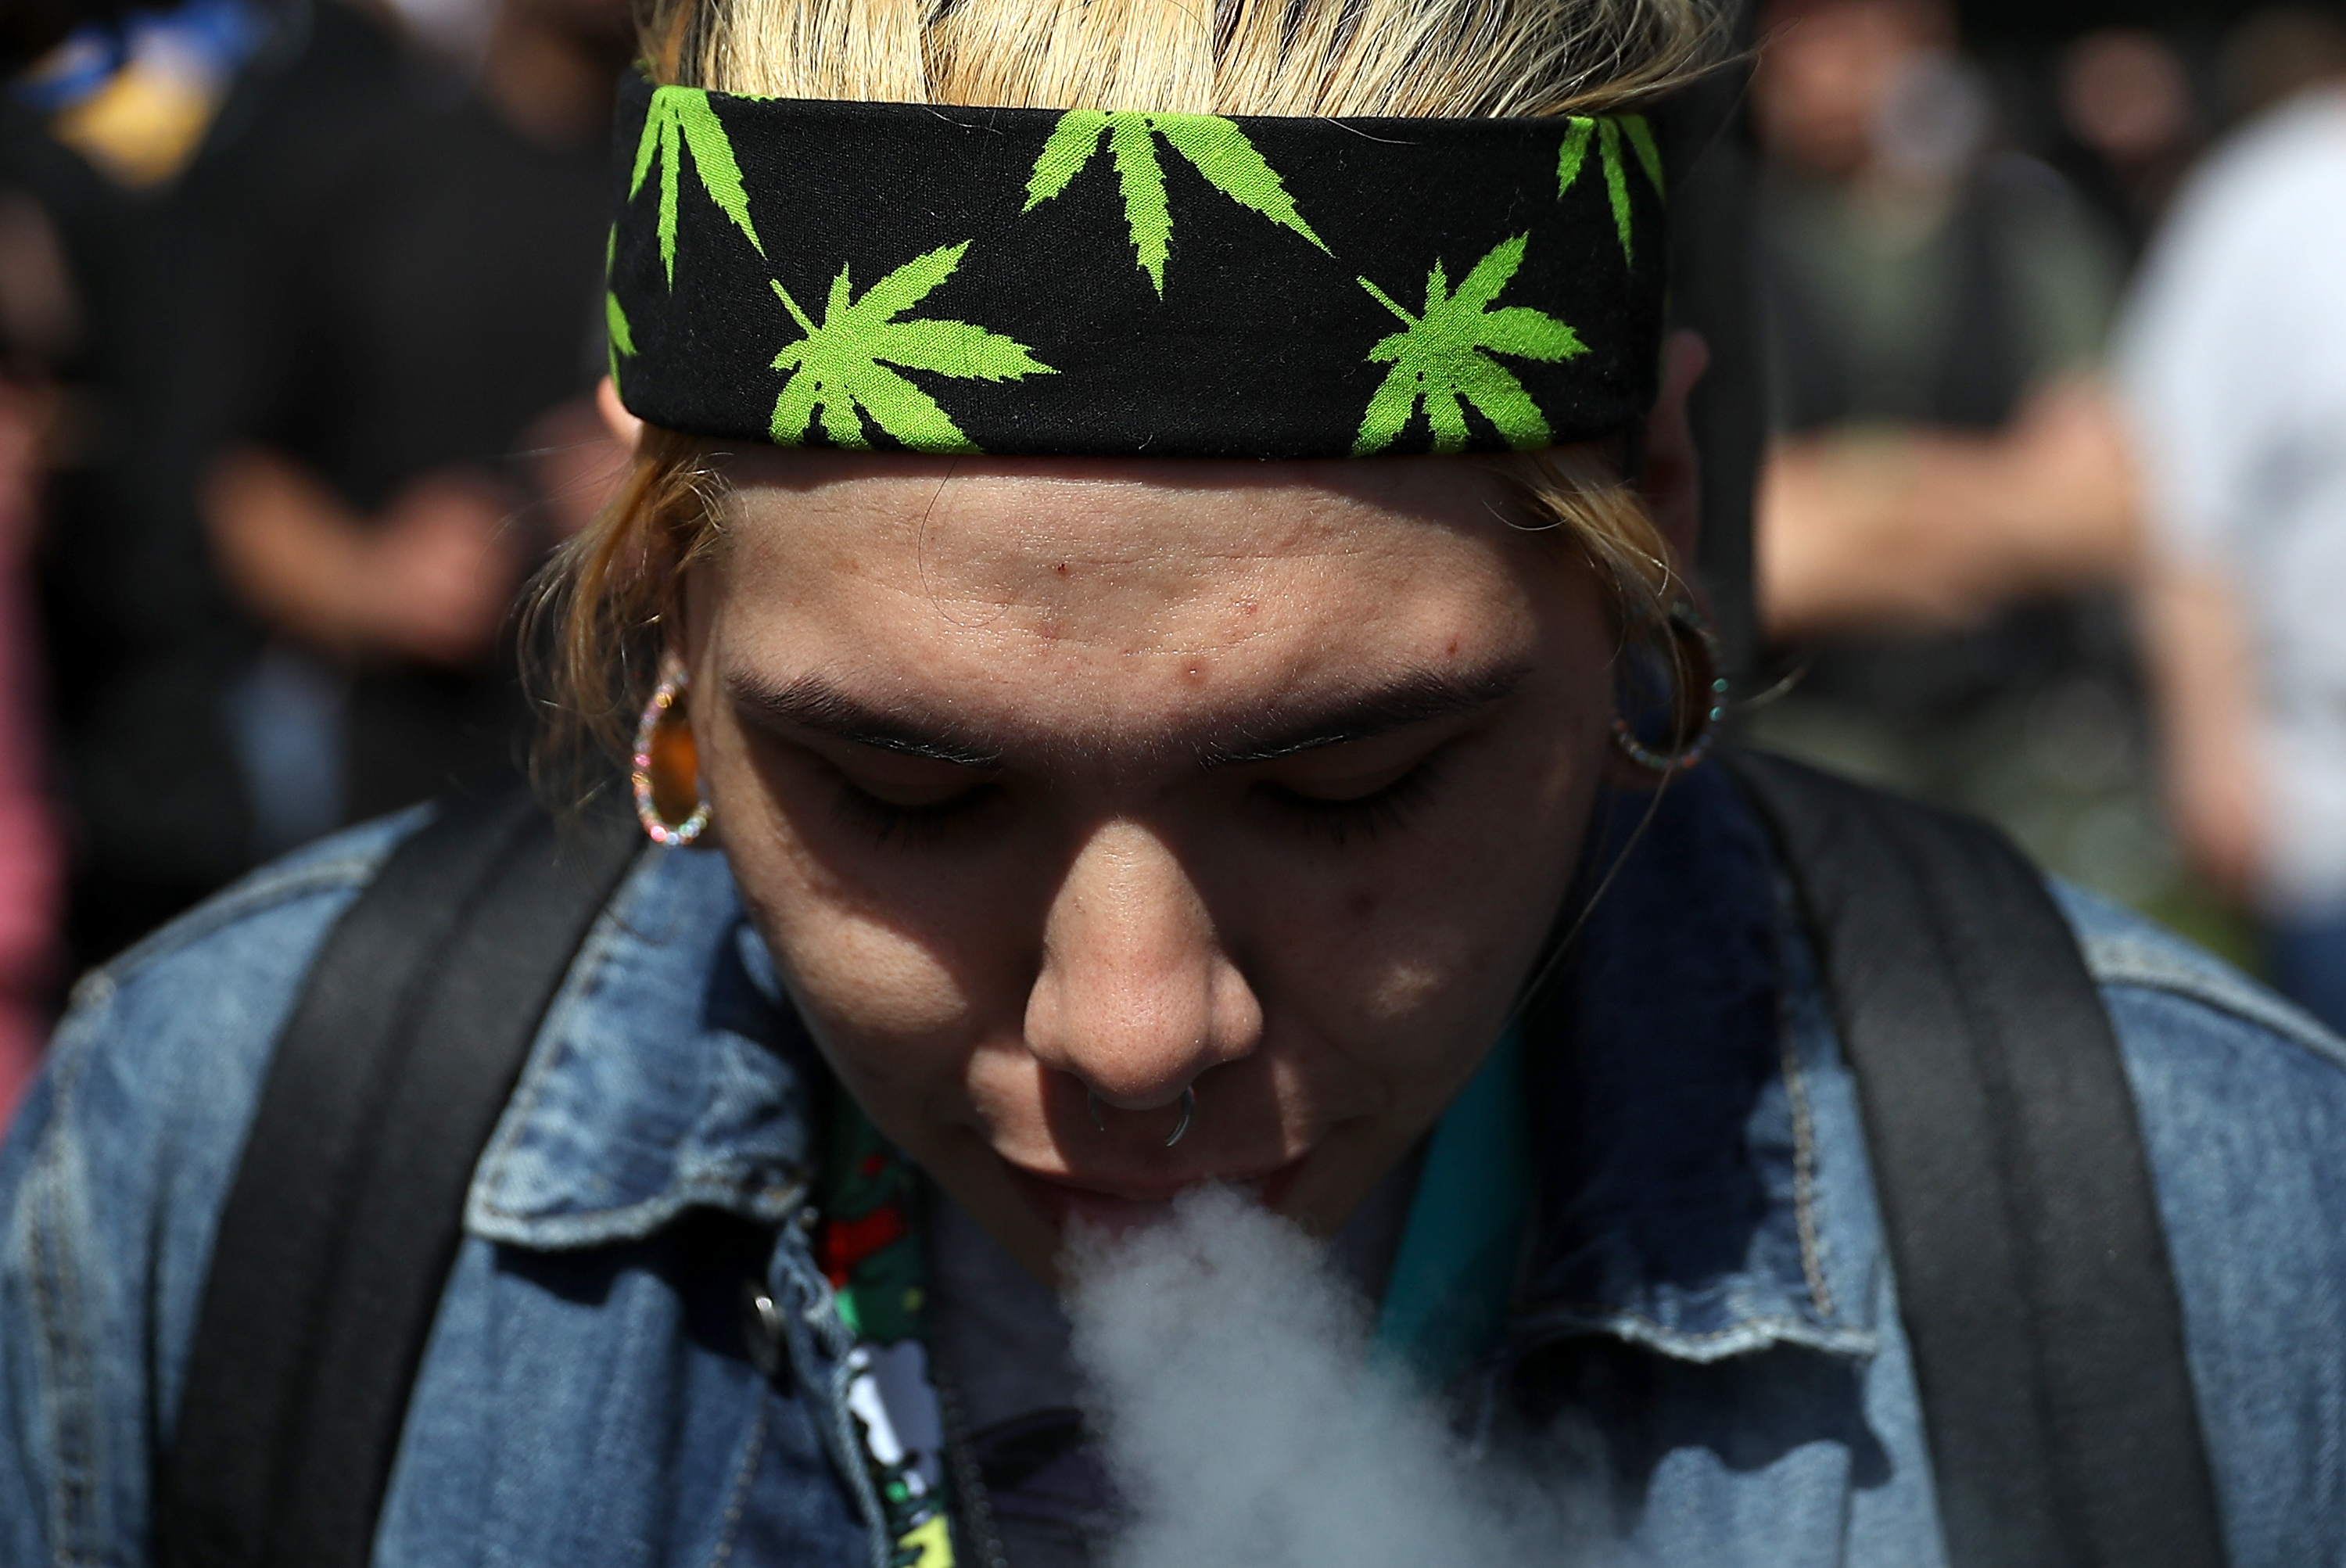 A marijuana user blows smoke after taking a hit from a bong during a 420 Day celebration on 'Hippie Hill' in Golden Gate Park on April 20, 2018, in San Francisco, California. (Getty)